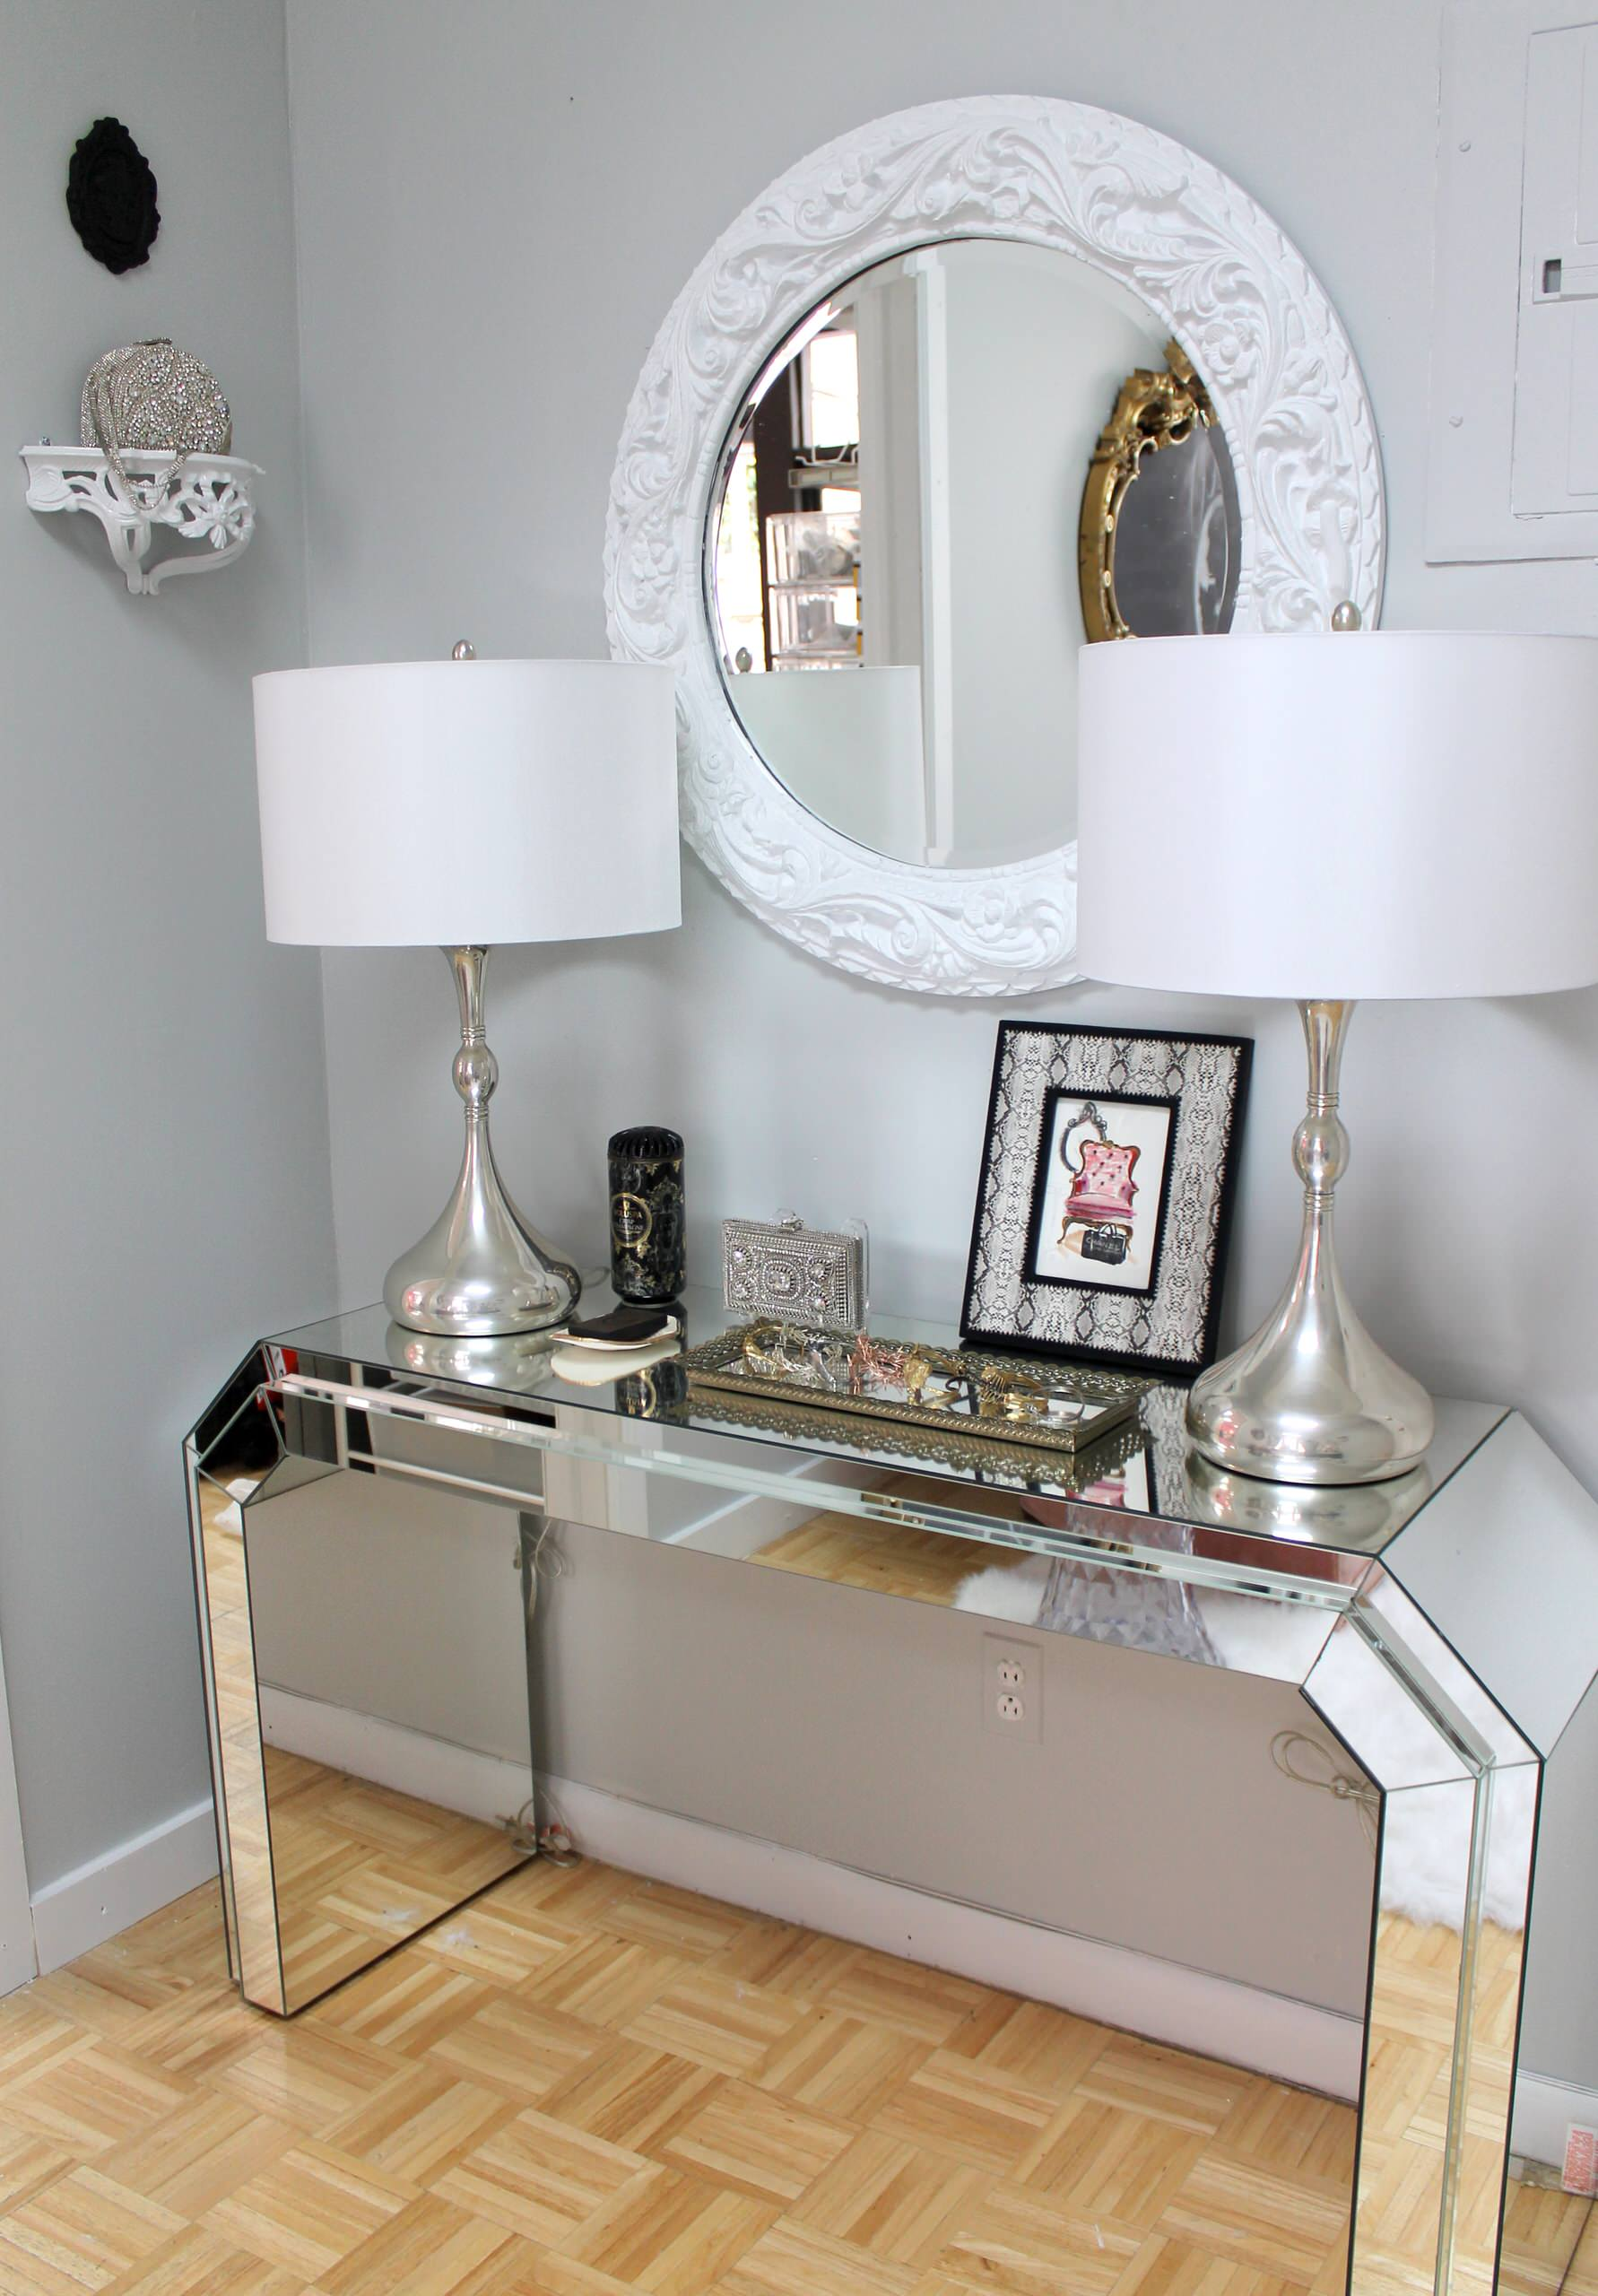 decoration ideas beautiful frame round wall mirror and modern entryway tablewith table lamps also interior paint colors with baseboard plus parquet floors accent target amazing